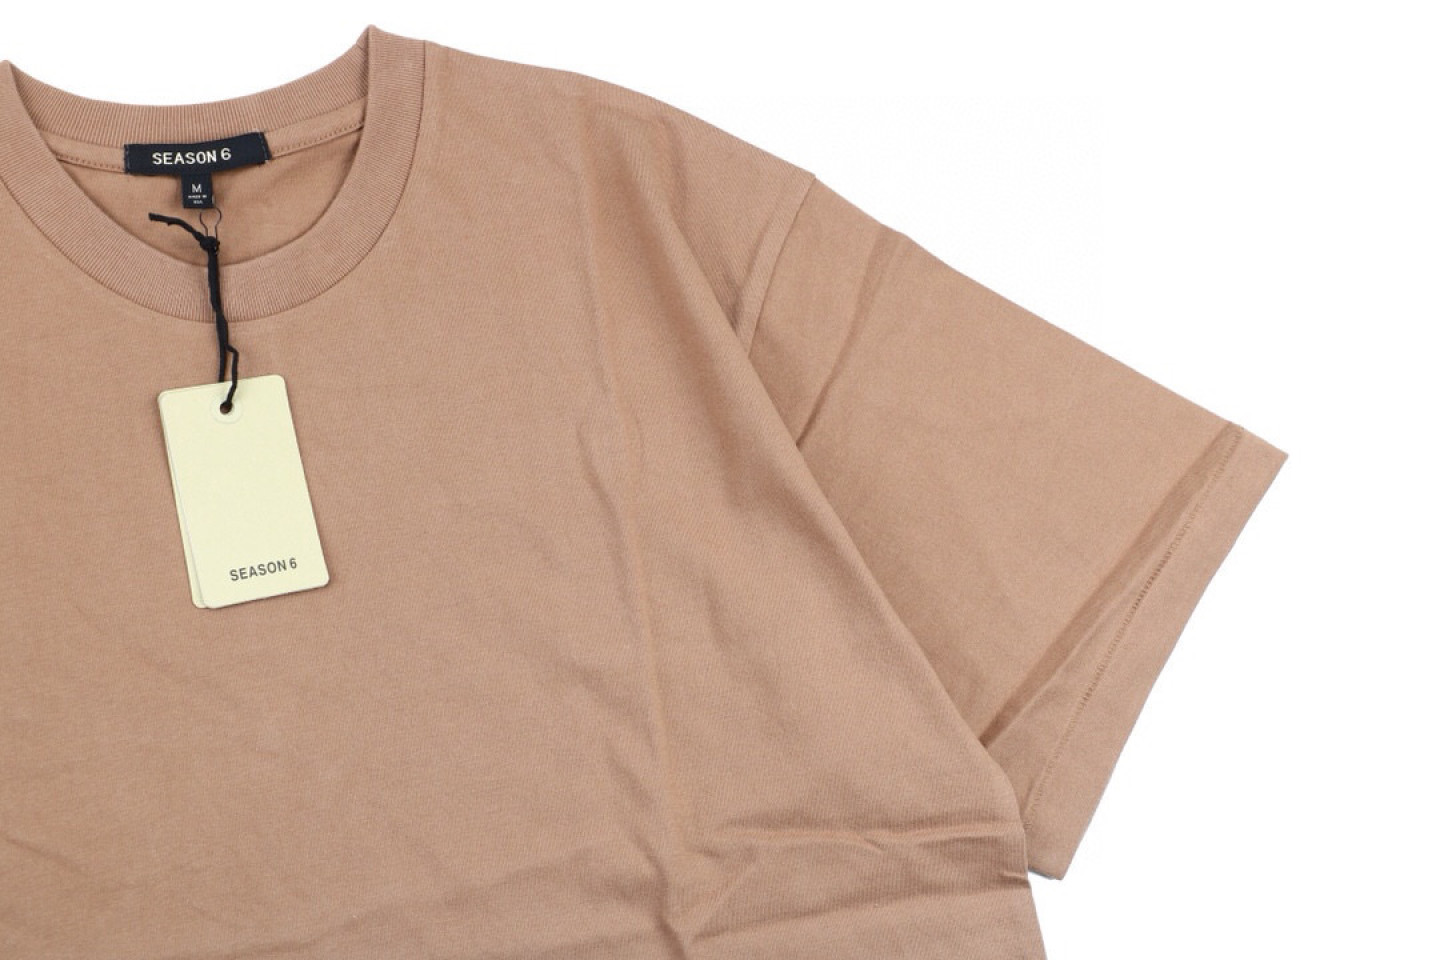 Shirt KANYE WEST yeezy reason 6 high street shirt beige 4 kanye_west_yeezy_reason_6_high_street_shirt_beige__4